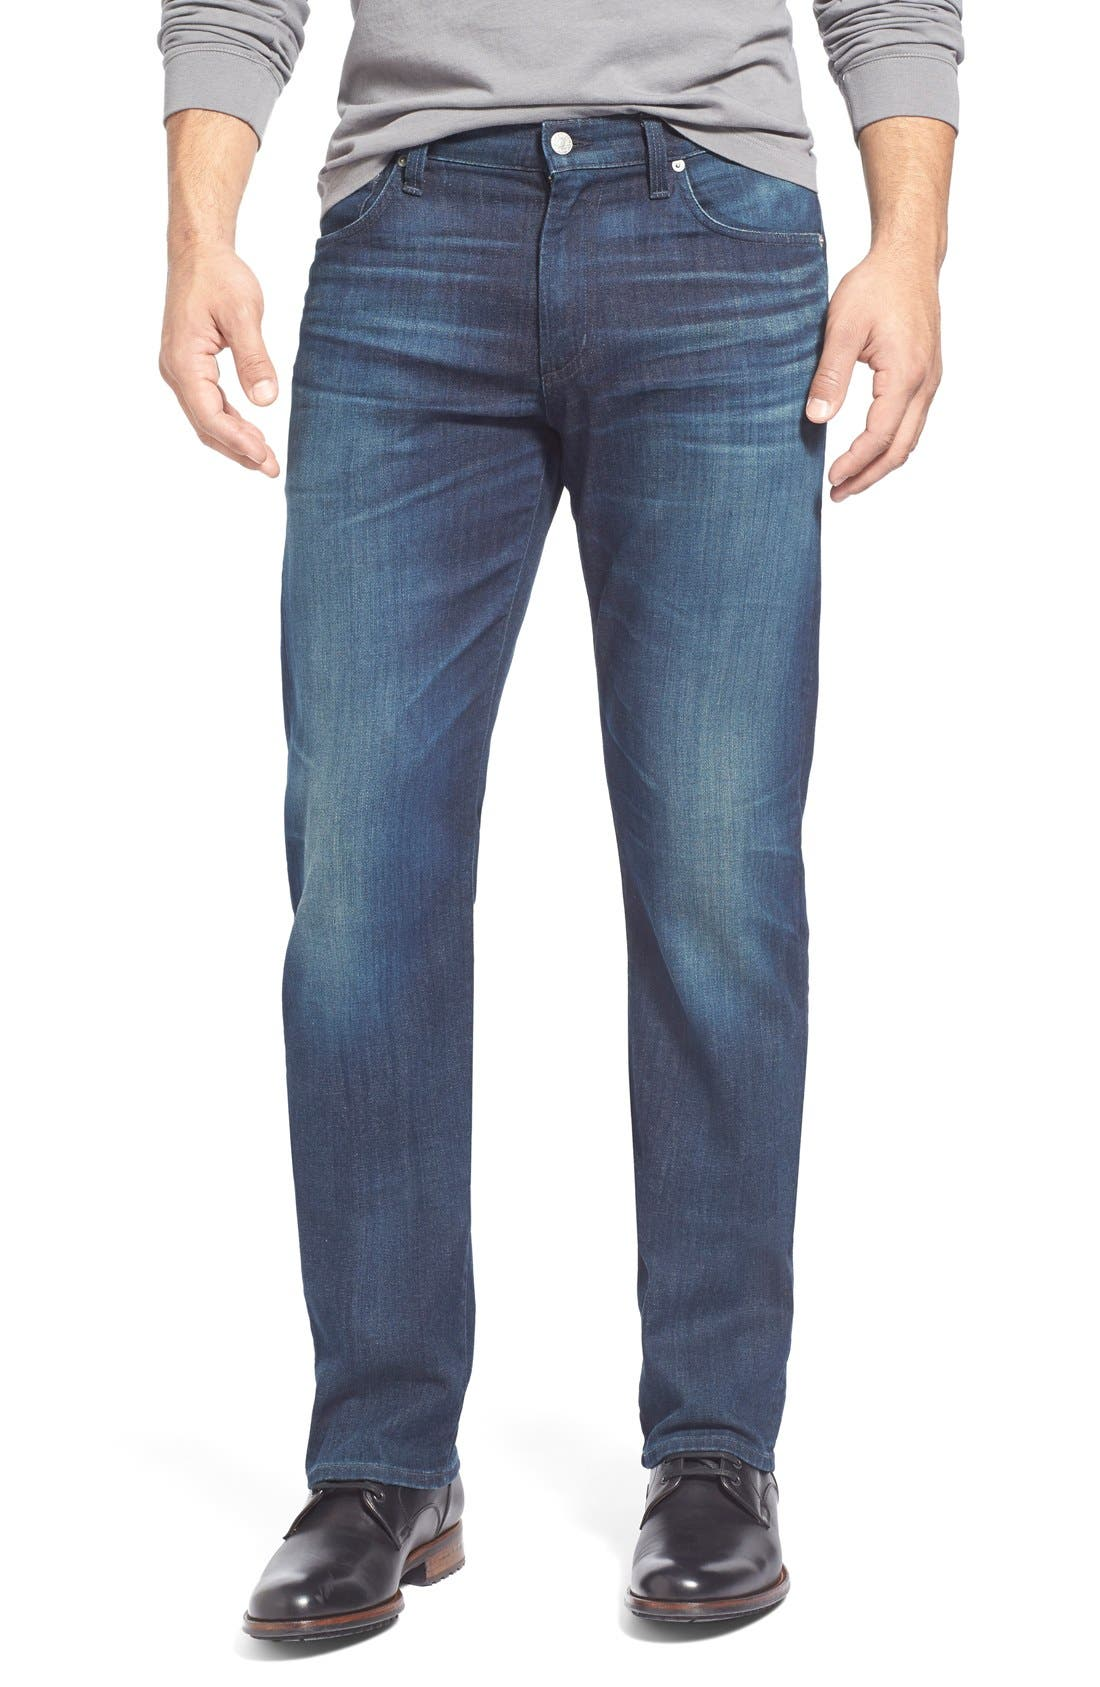 Alternate Image 1 Selected - Citizens of Humanity 'Sid Classic' Straight Leg Jeans (Marshall)